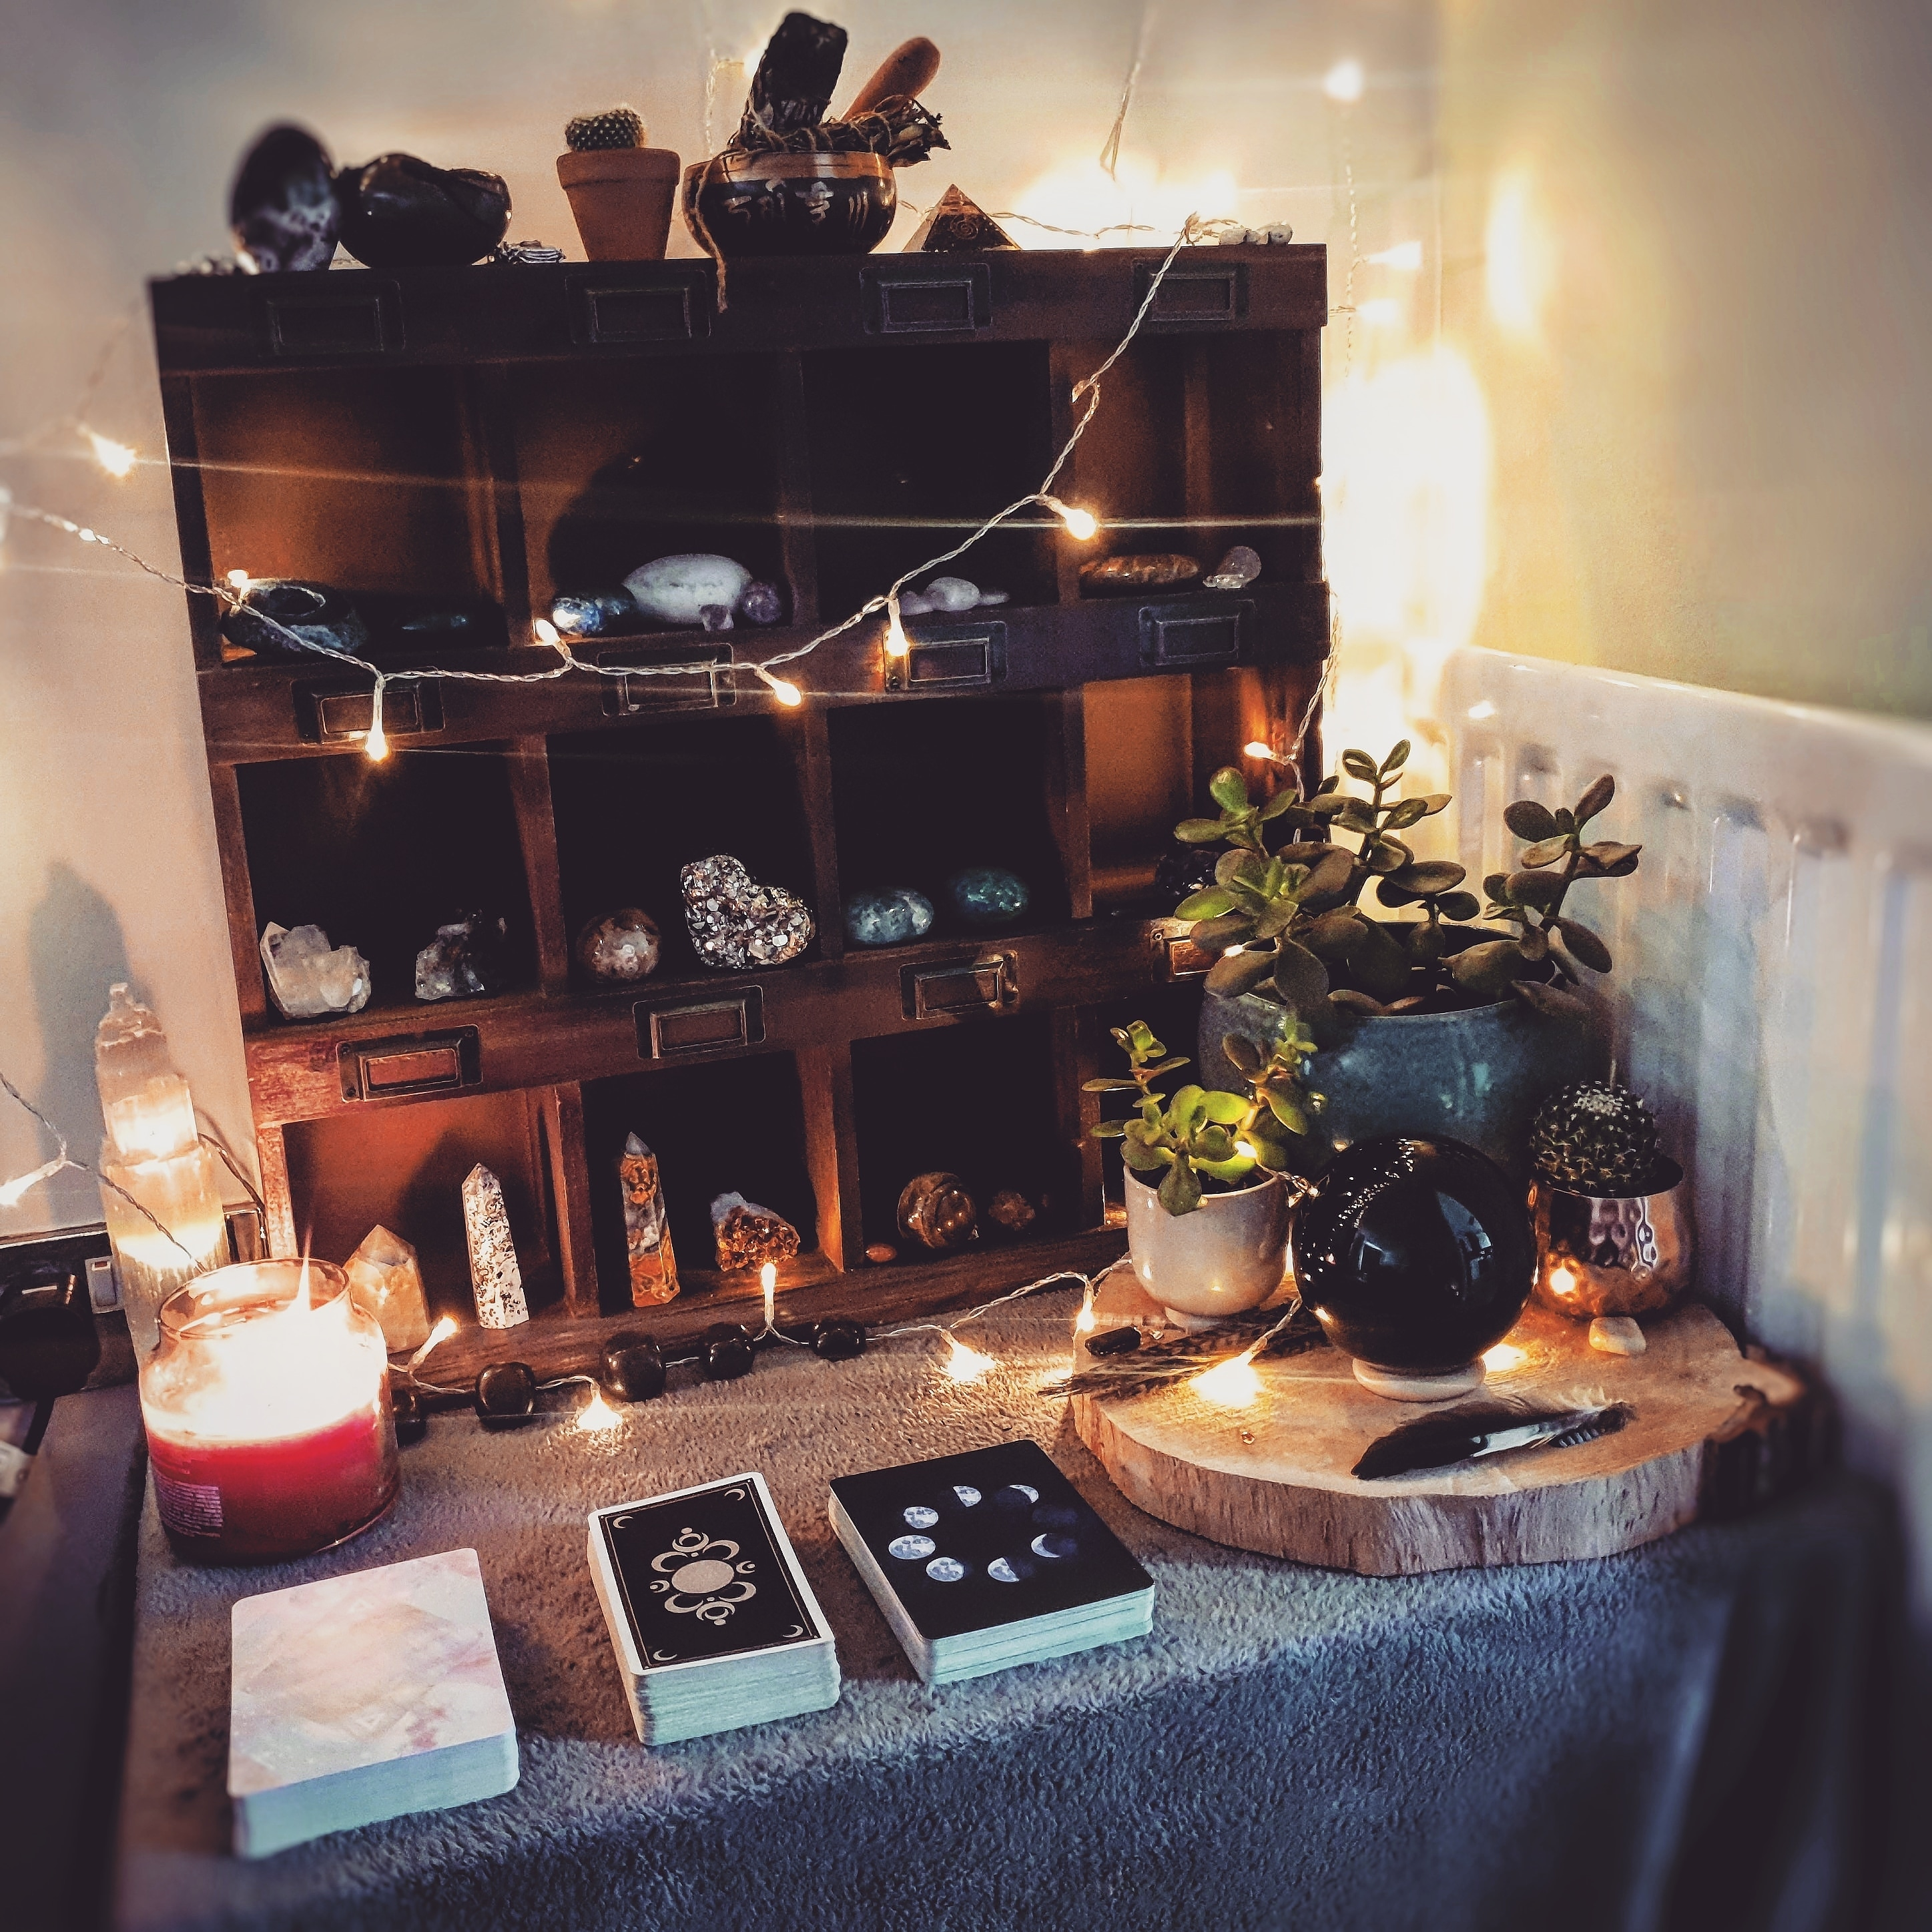 Creating a Sanctuary Space